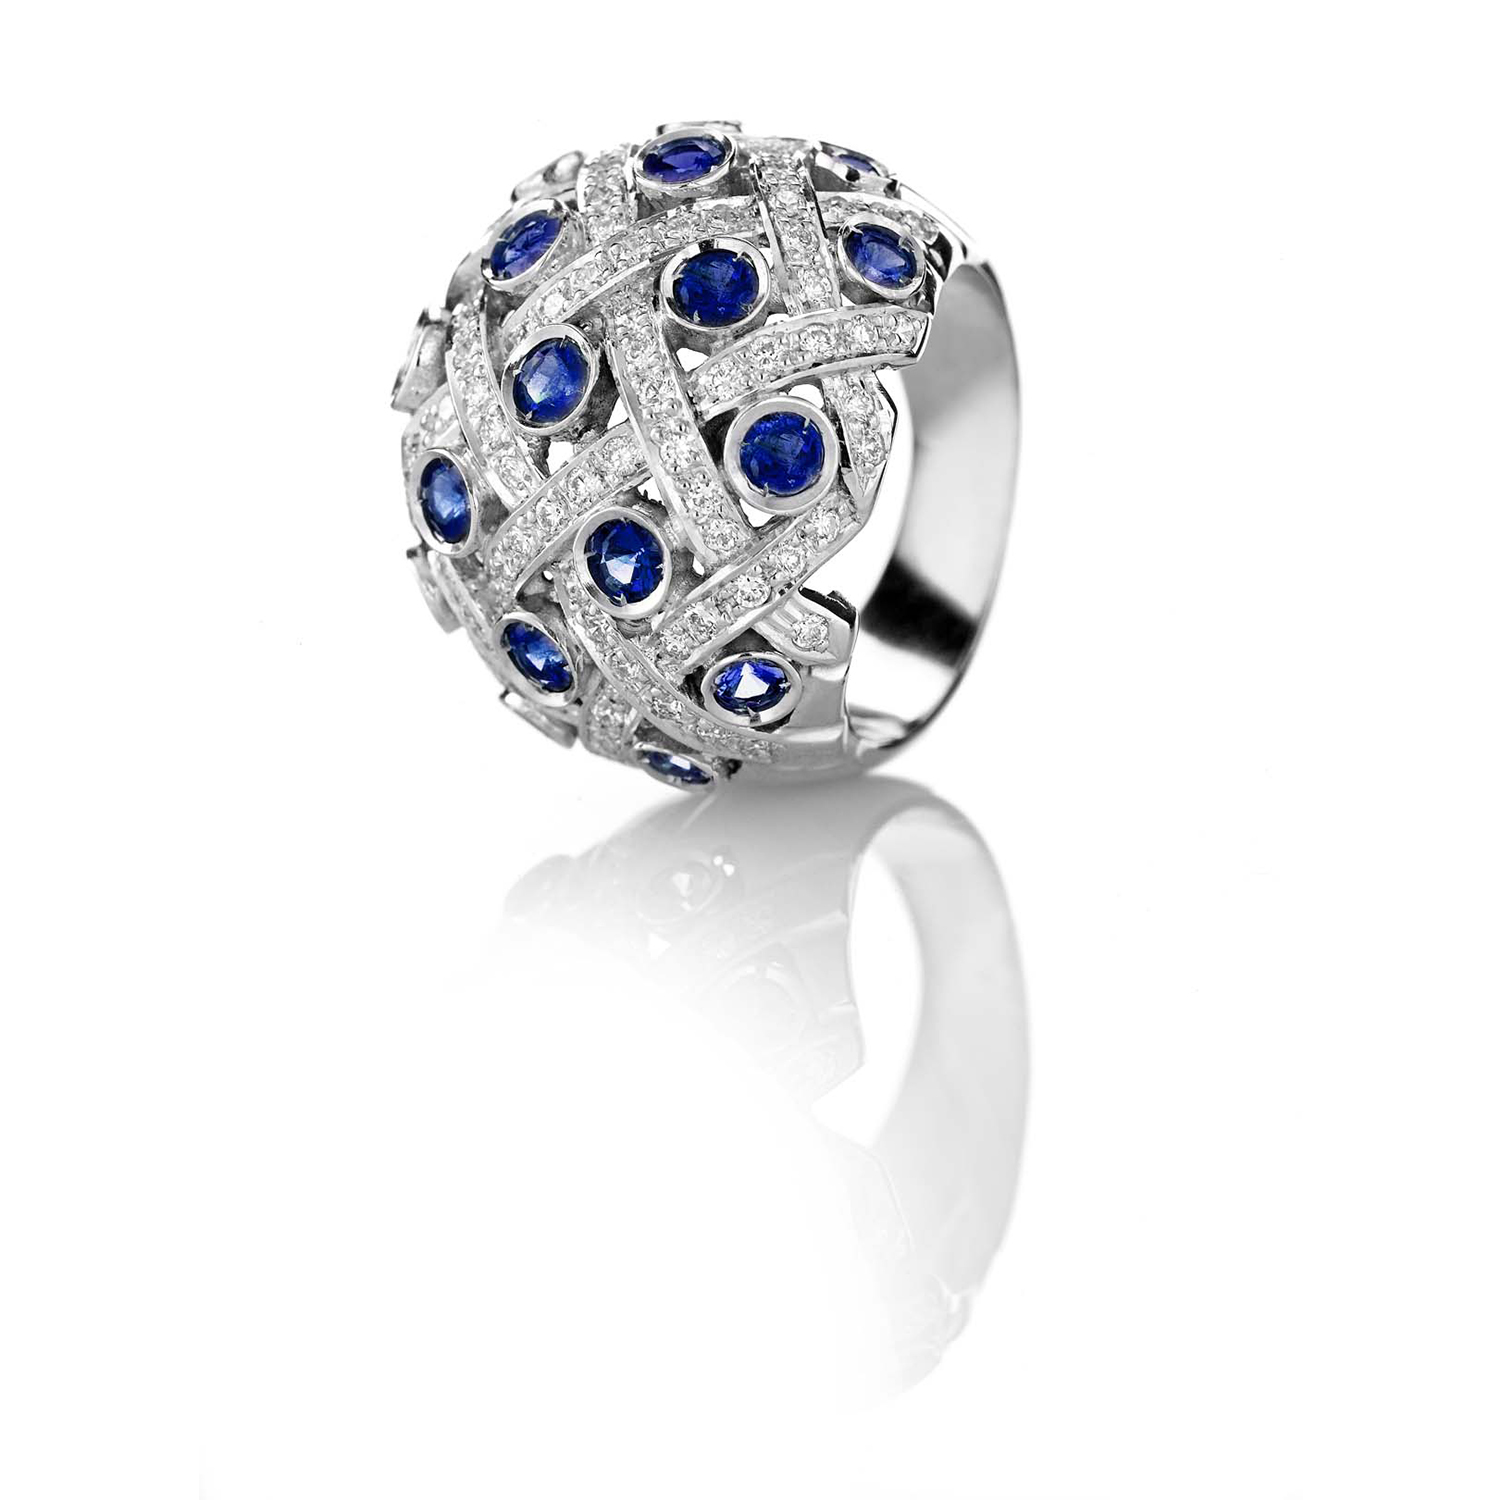 Sensi joyas jewellery Granada silver engagement18K WHITE GOLD RING DECORATED WITH 2.30CT OF BRILLIANT-CUT NATURAL SAPPHIRES AND 1.07CT OF BRIGHT-CUT DIAMONDS.